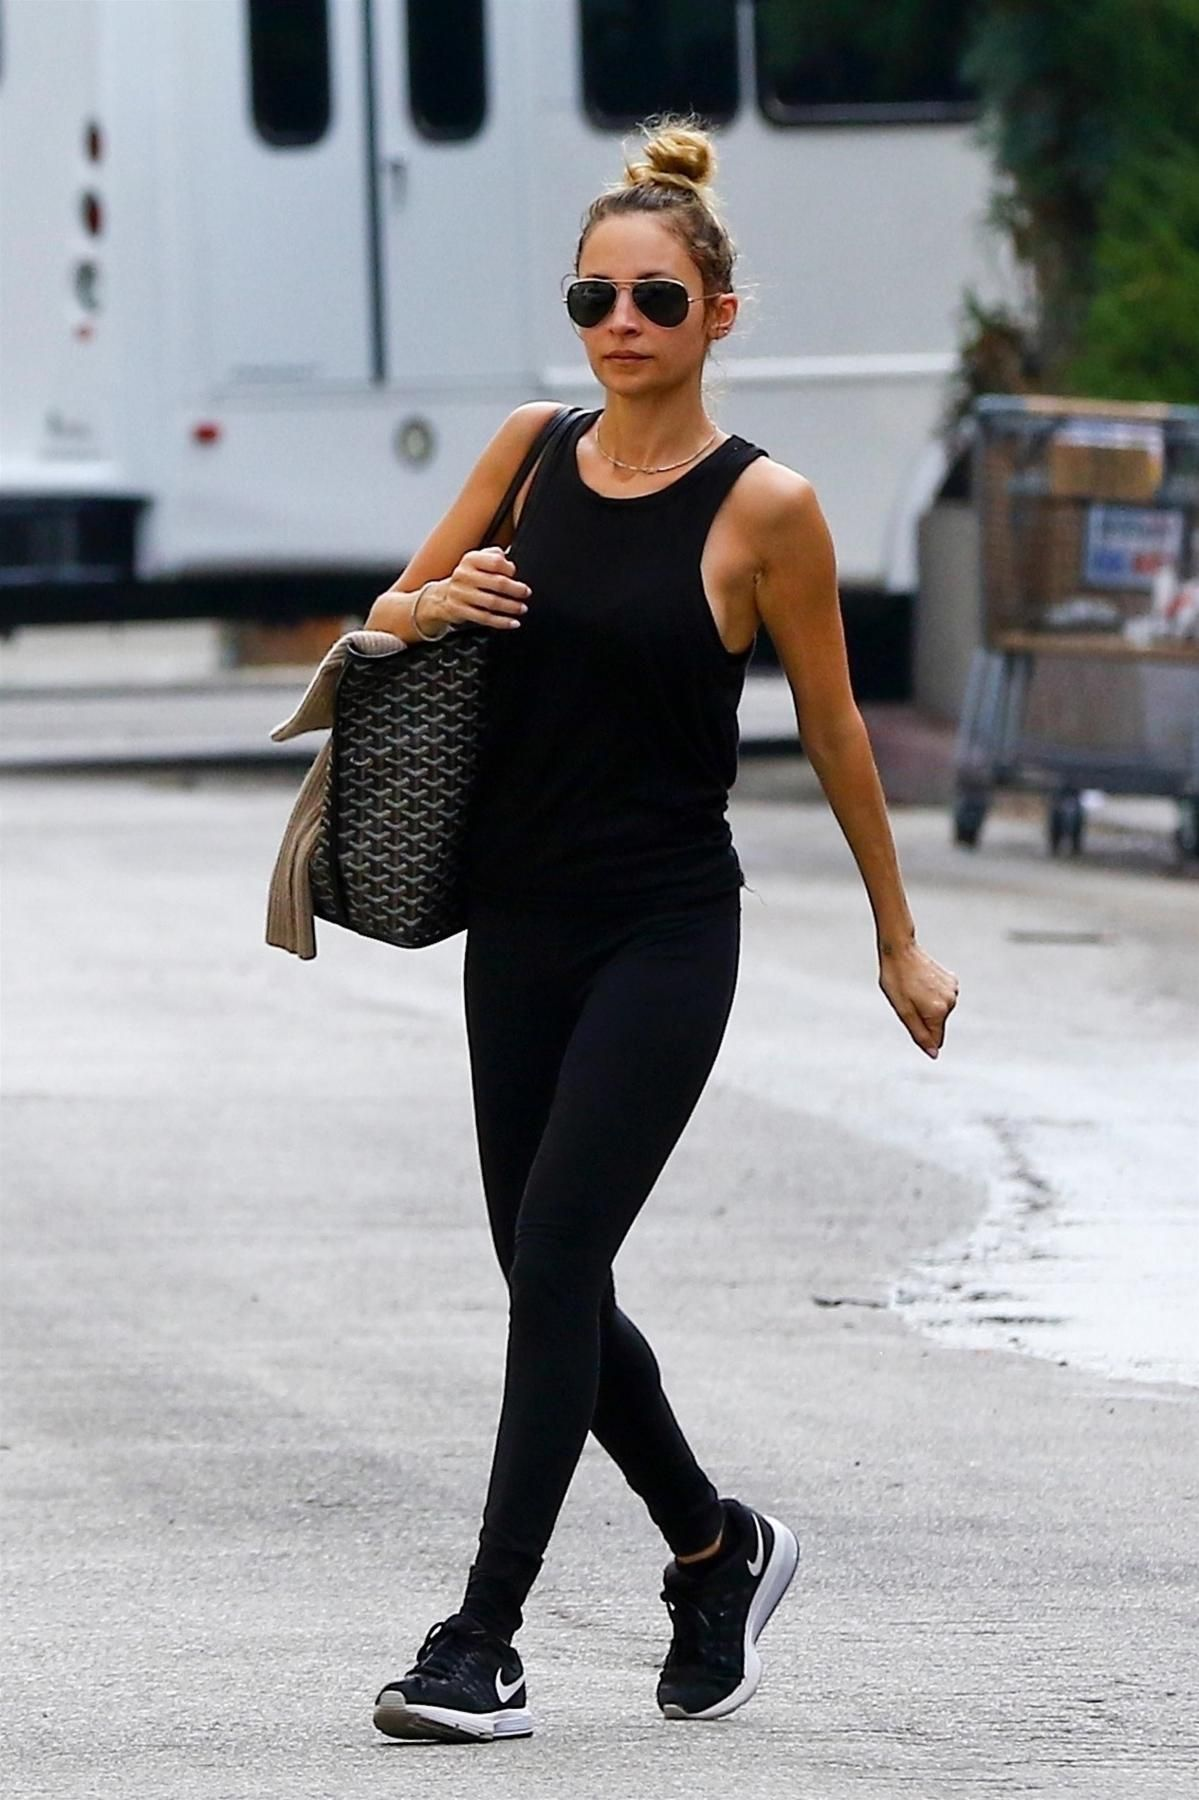 a85c927c8c00 Nicole Richie wearing Nike Air Zoom Vomero 11 Sneakers, Ray-Ban 3025  Aviator Large Metal Sunglasses in Gold/Green and Goyard St. Louis Tote